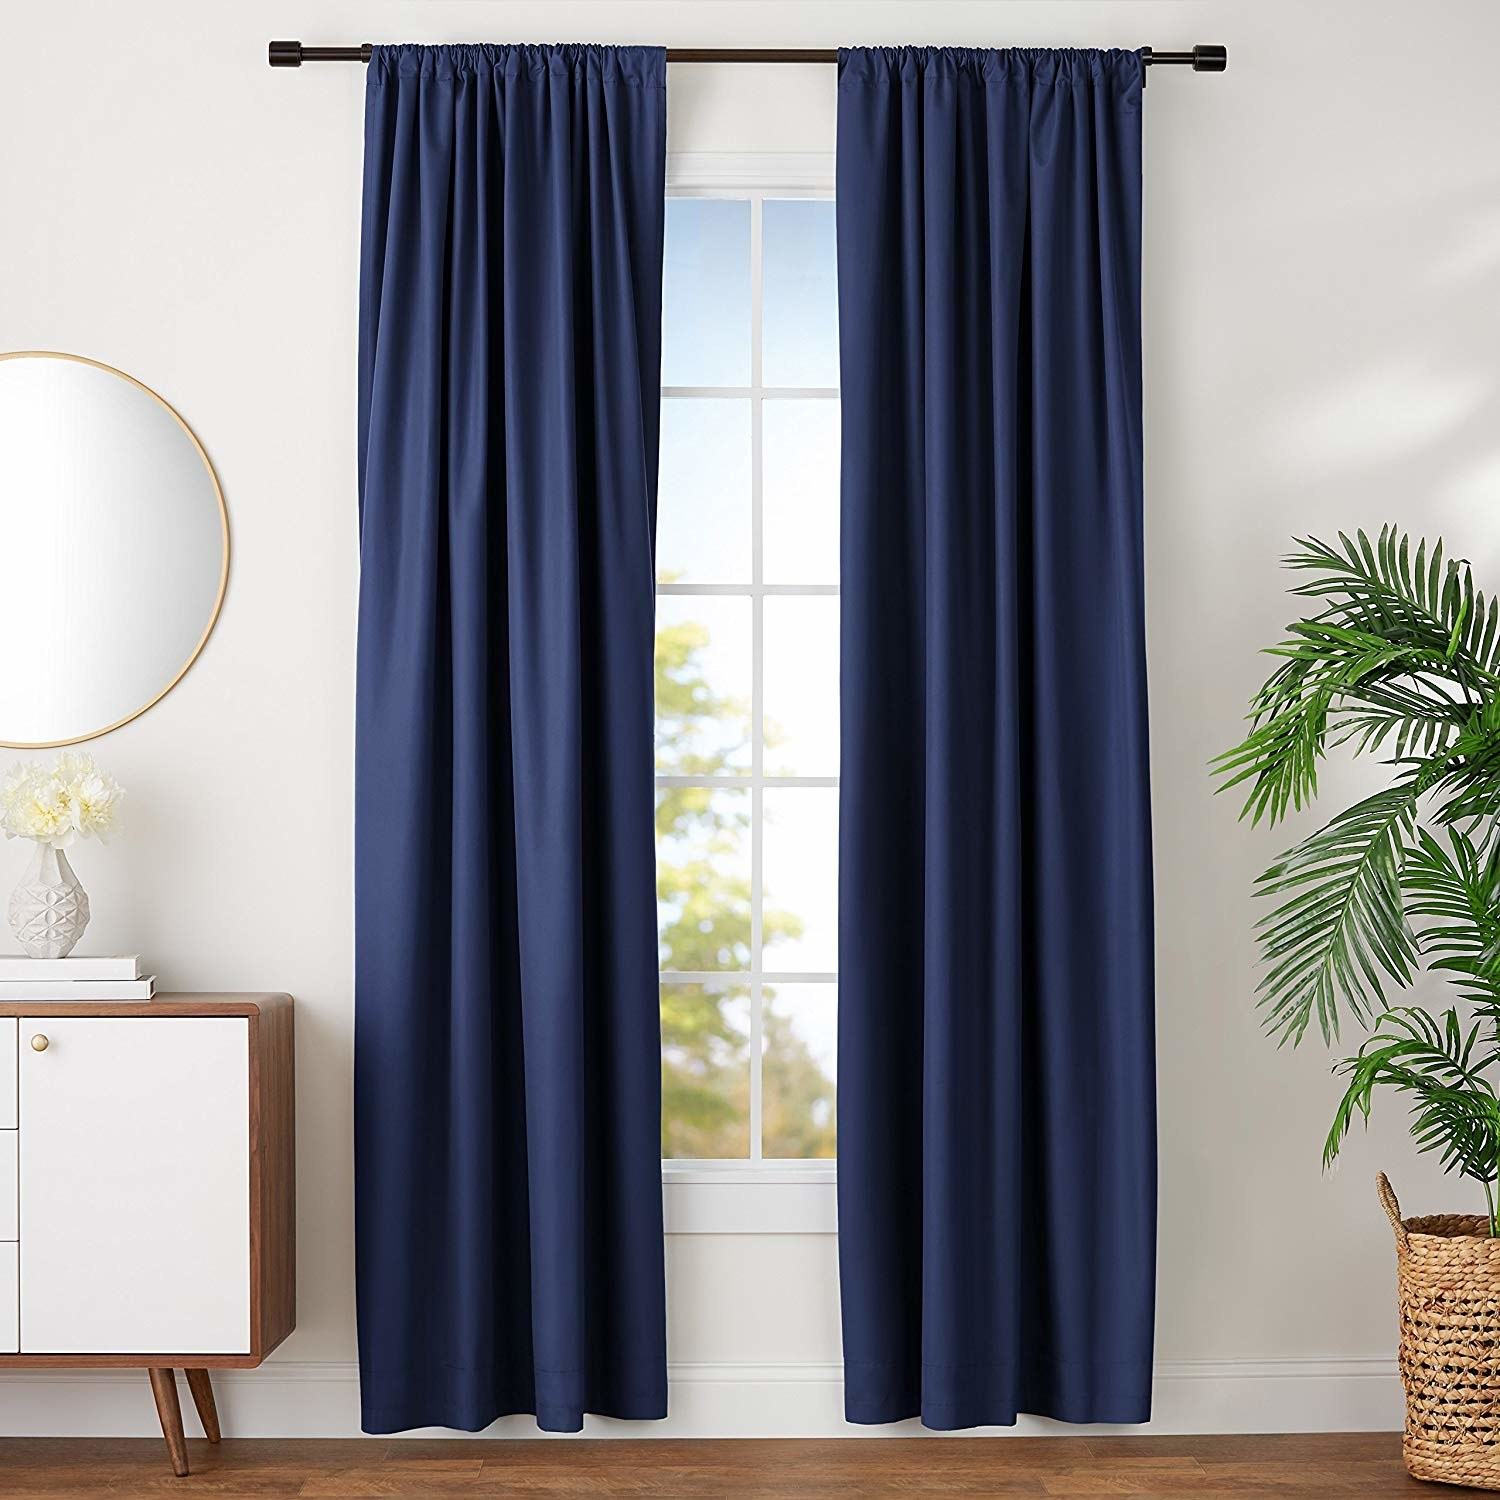 The panels in navy, reaching from above the window to one or two inches off the ground